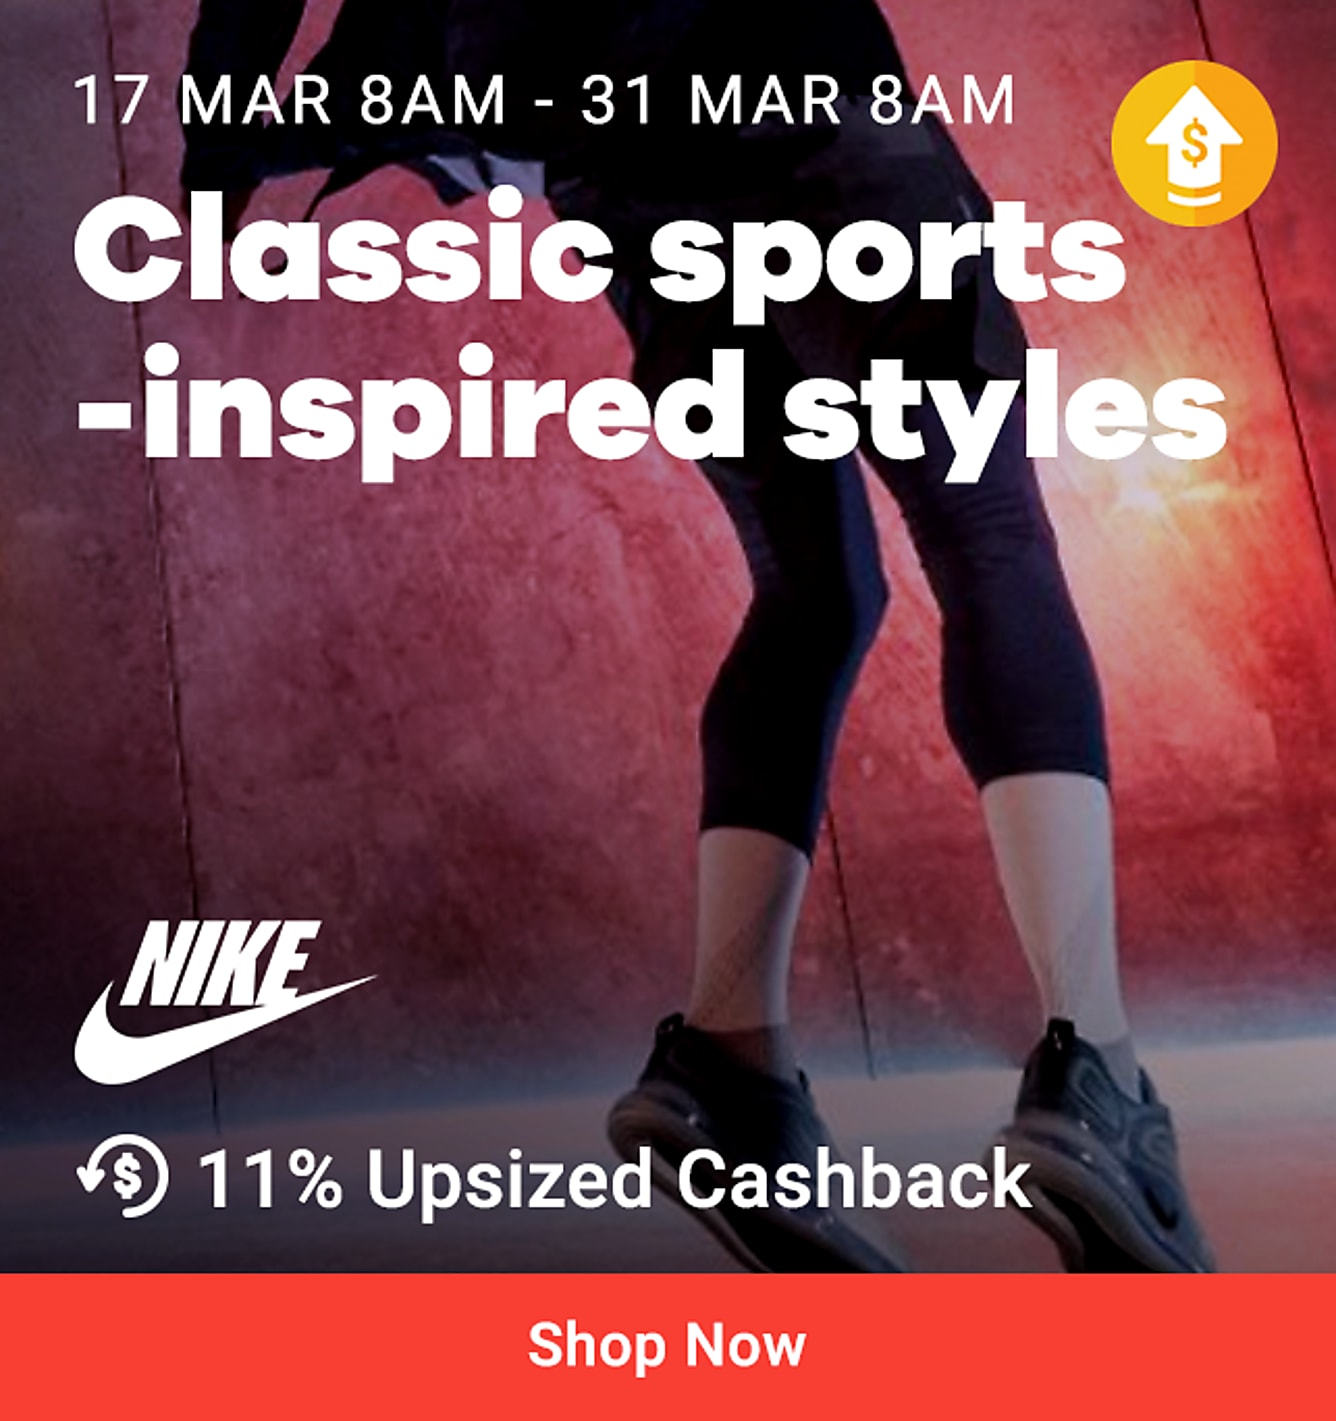 Nike 11% Upsized Cashback (was 2%) from 17 March 8am - 31 March 8am